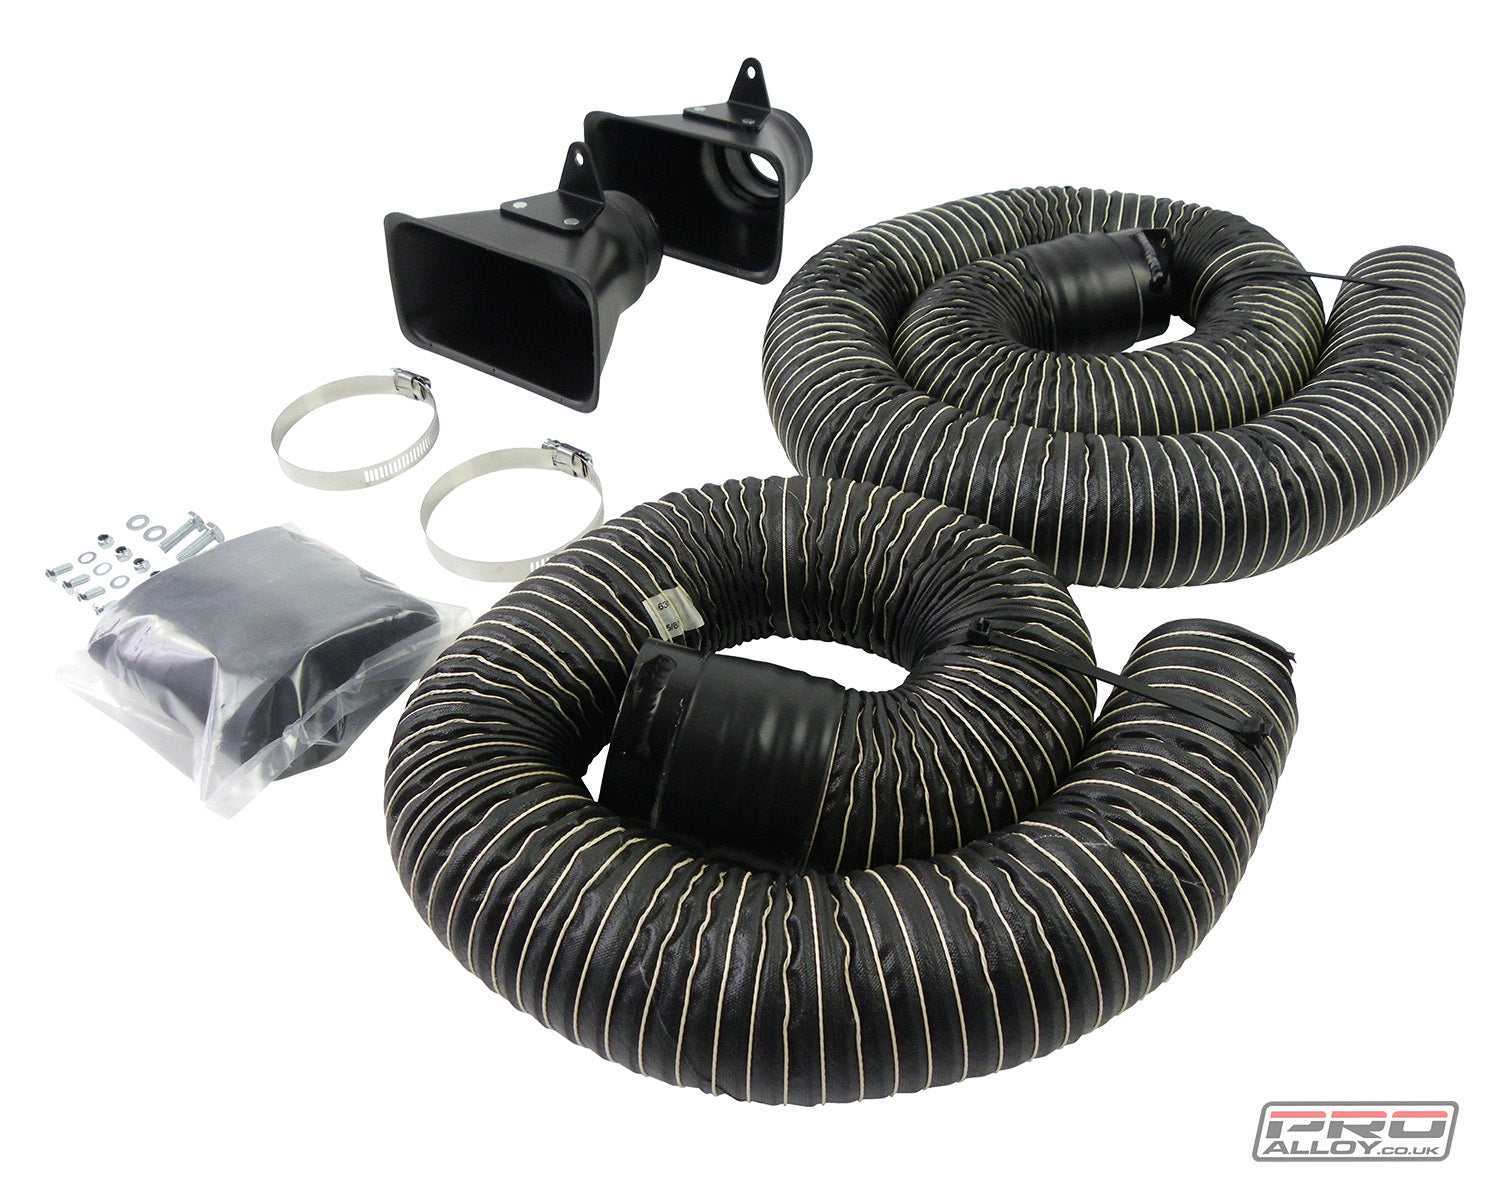 Kit de conductos intercooler Exige S